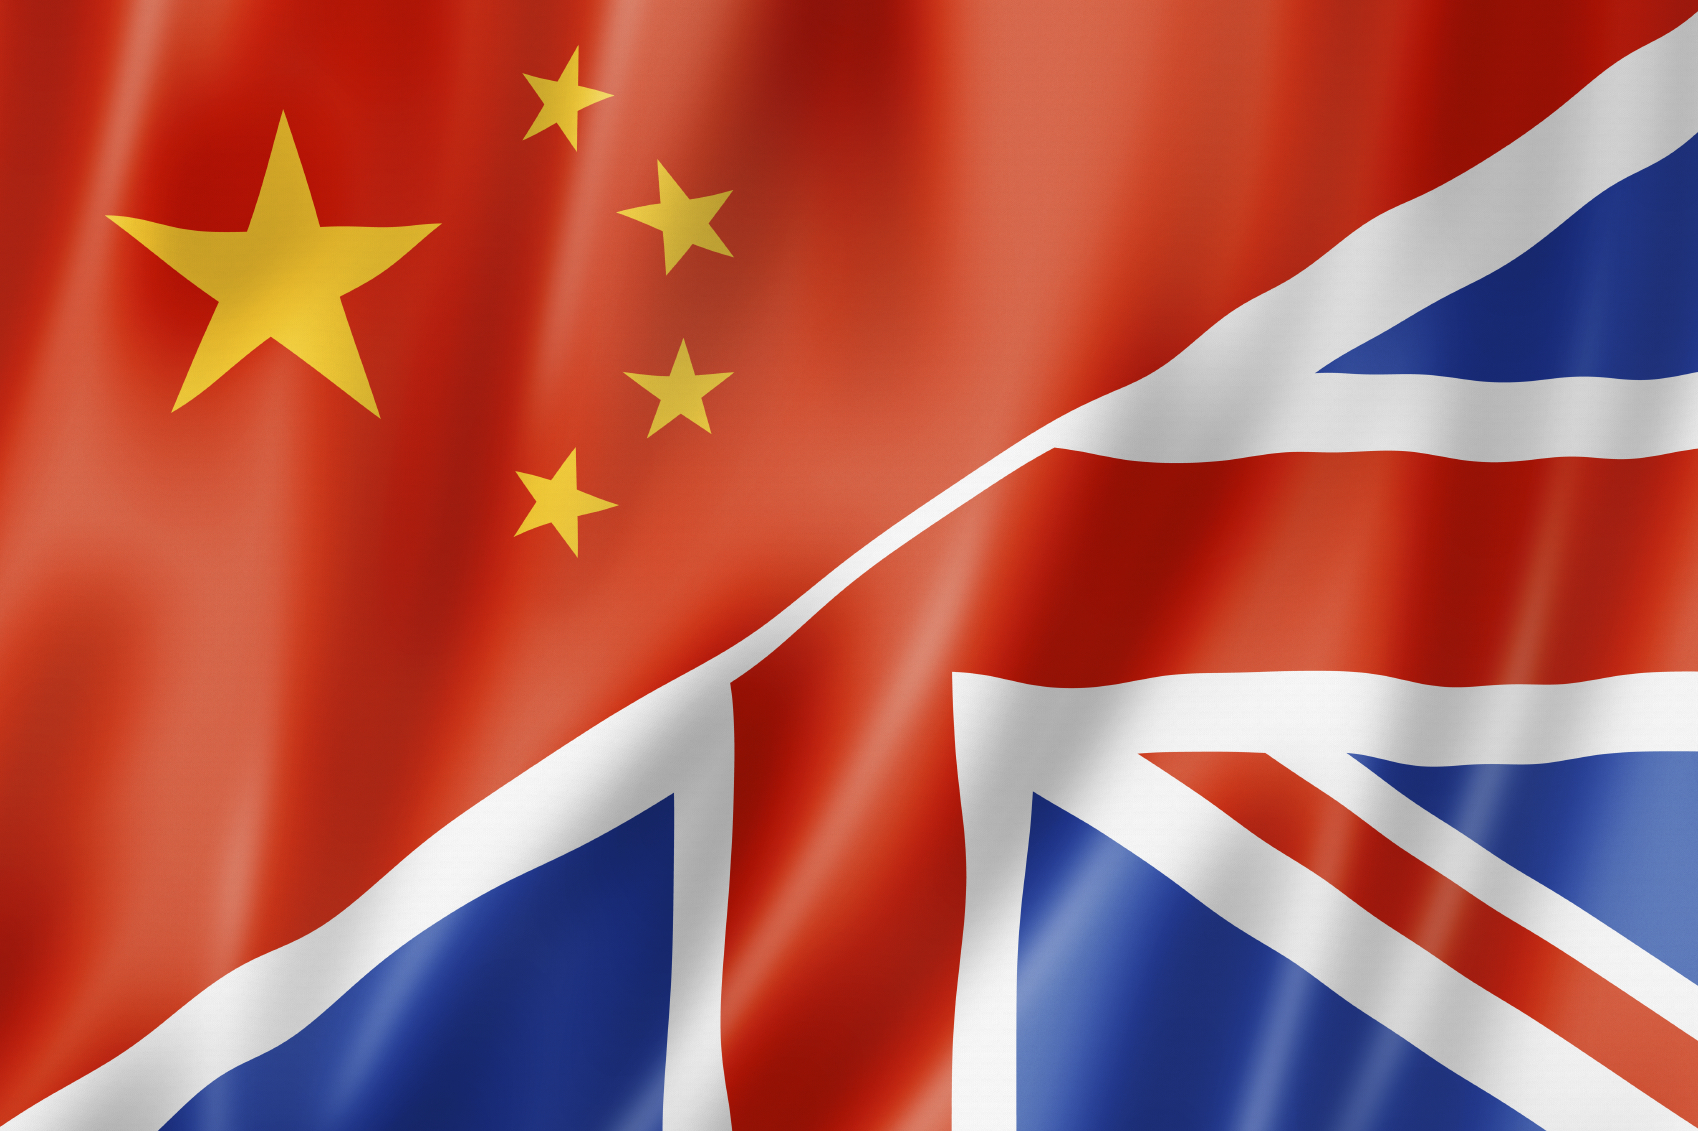 Mixed China and United Kingdom flag, three dimensional render, illustration